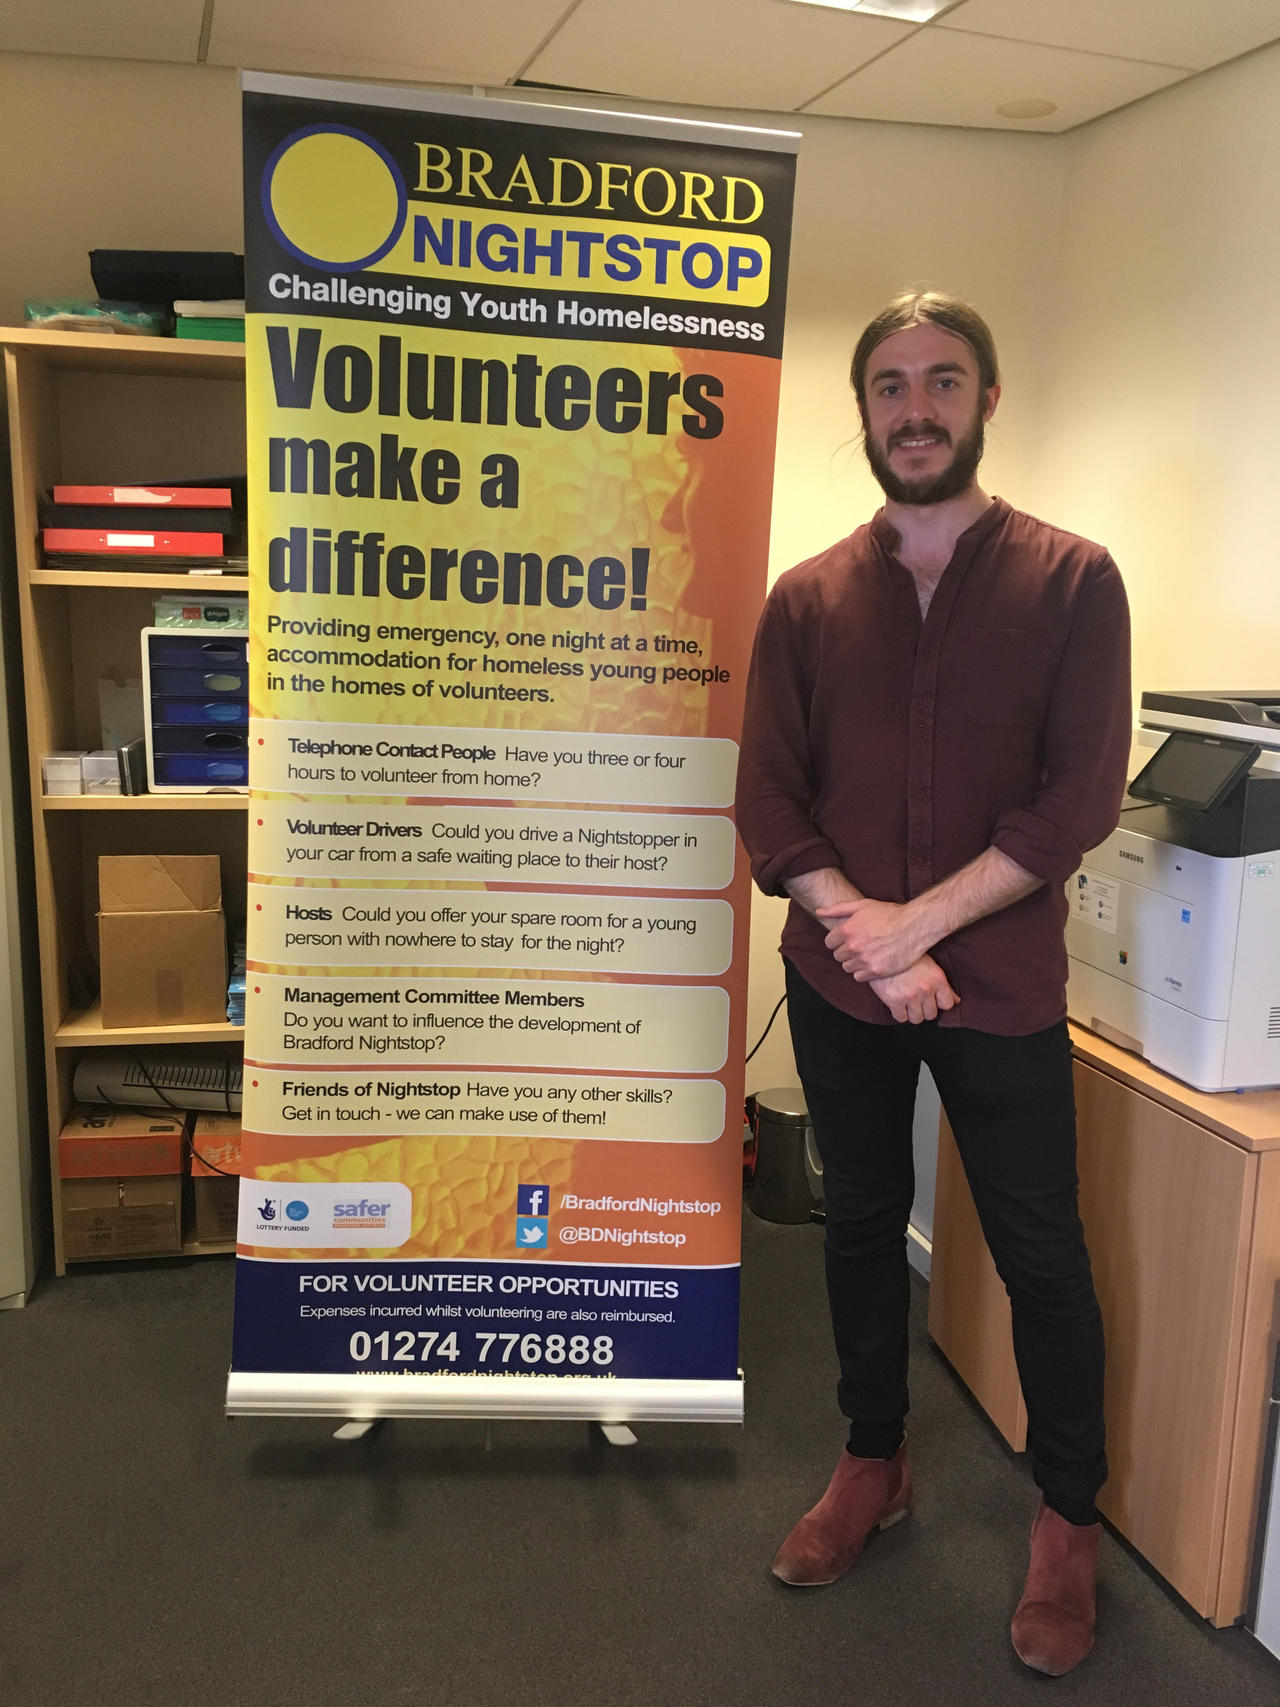 Saw Lawrence on a recent visit to the Bradford Nightstop office.